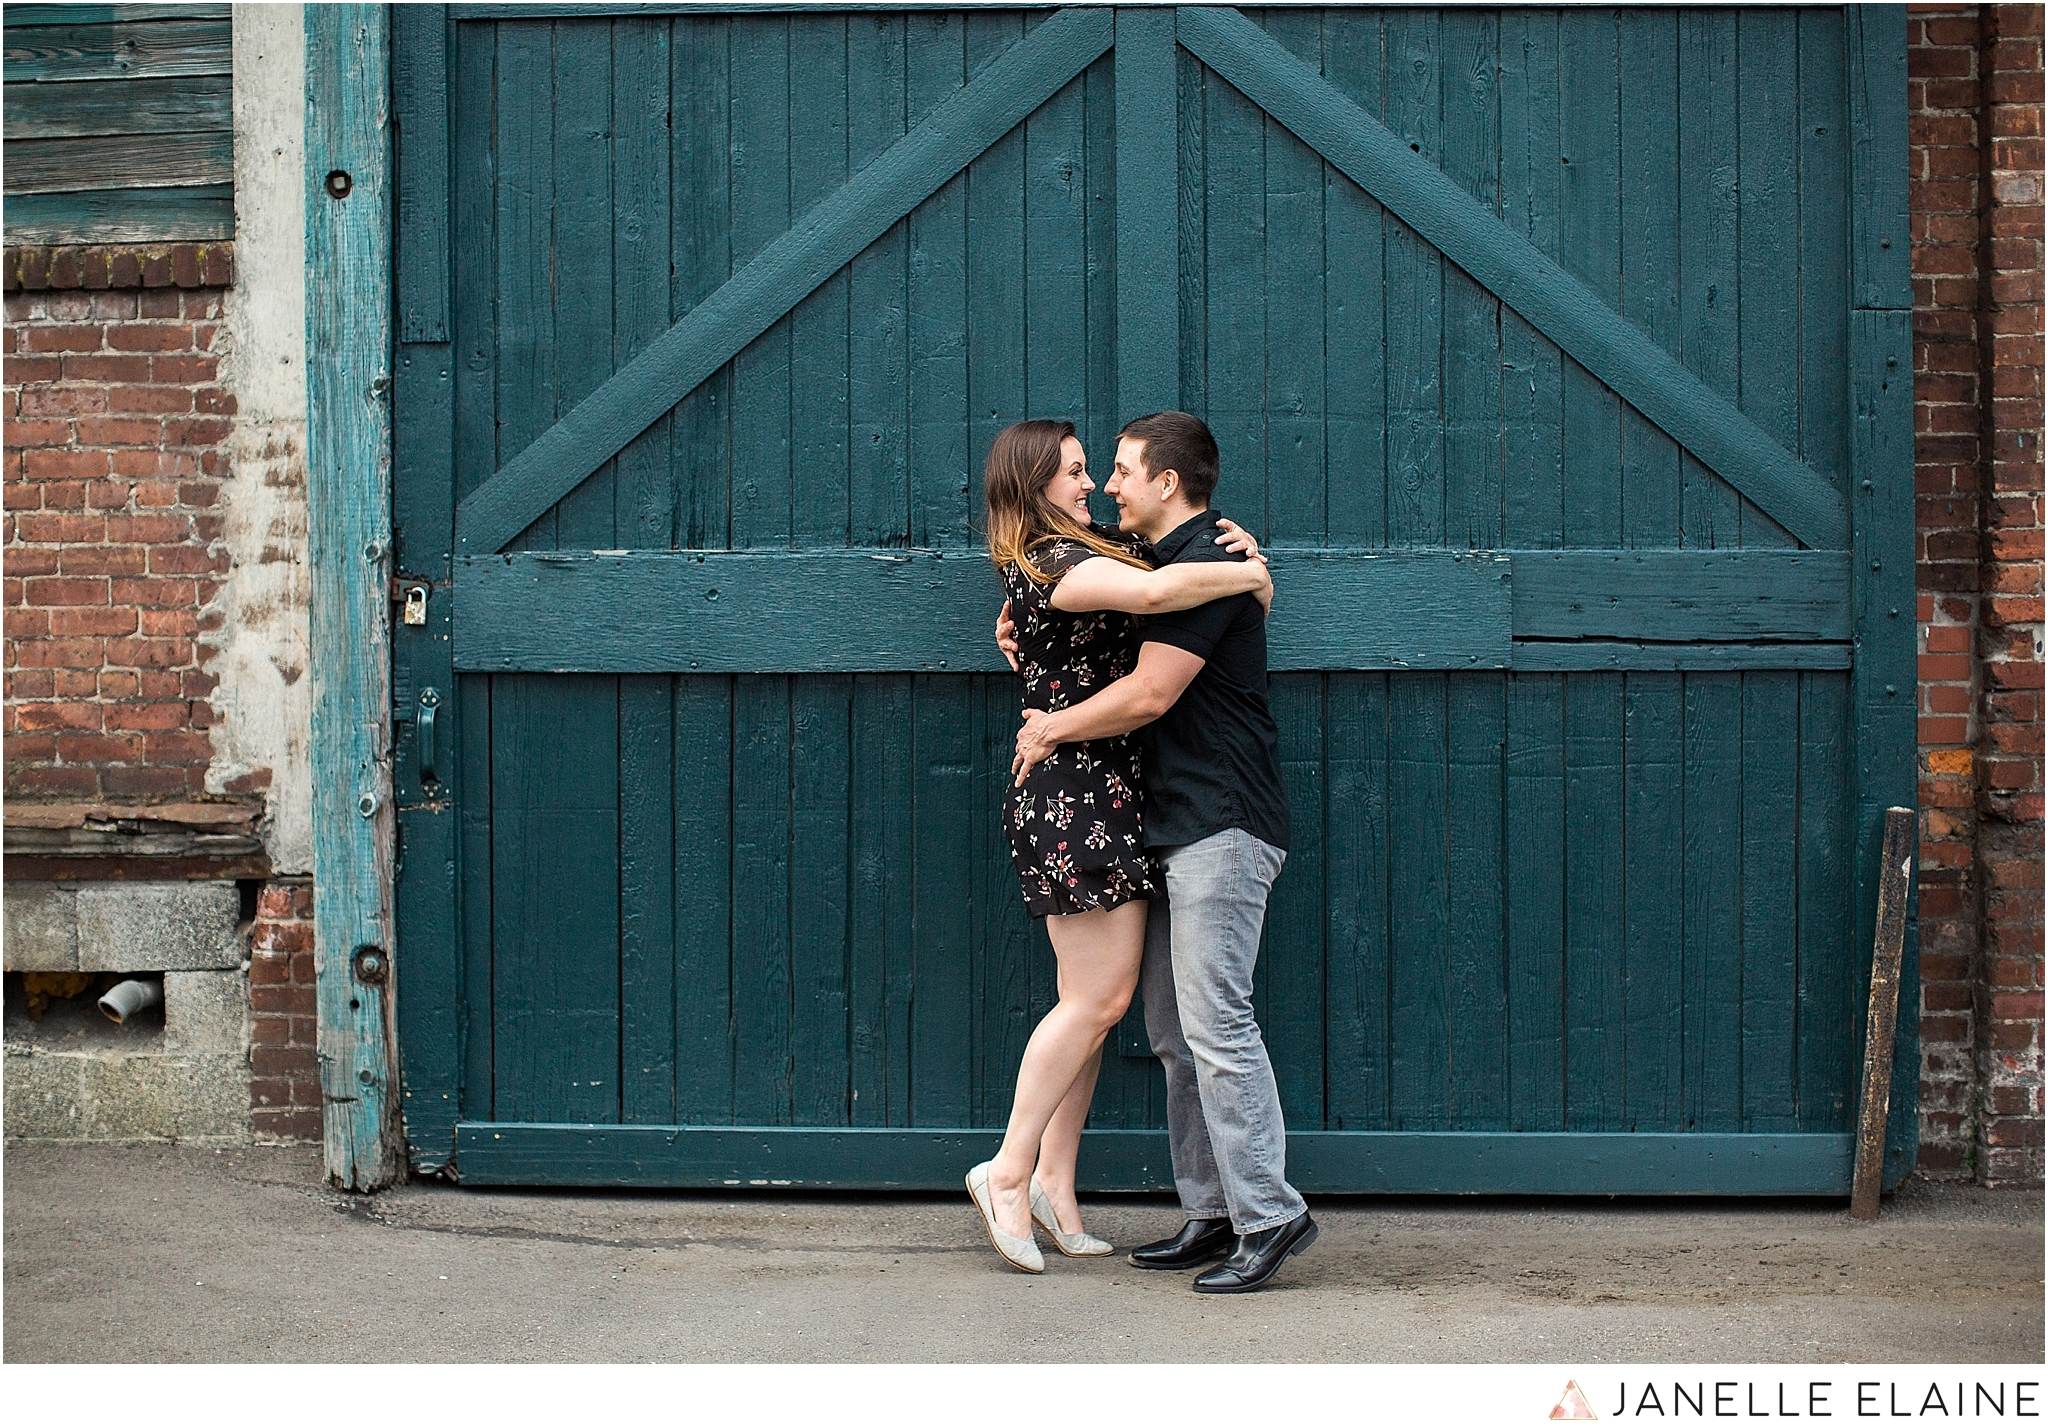 karen ethan-georgetown engagement photos-seattle-janelle elaine photography-81.jpg